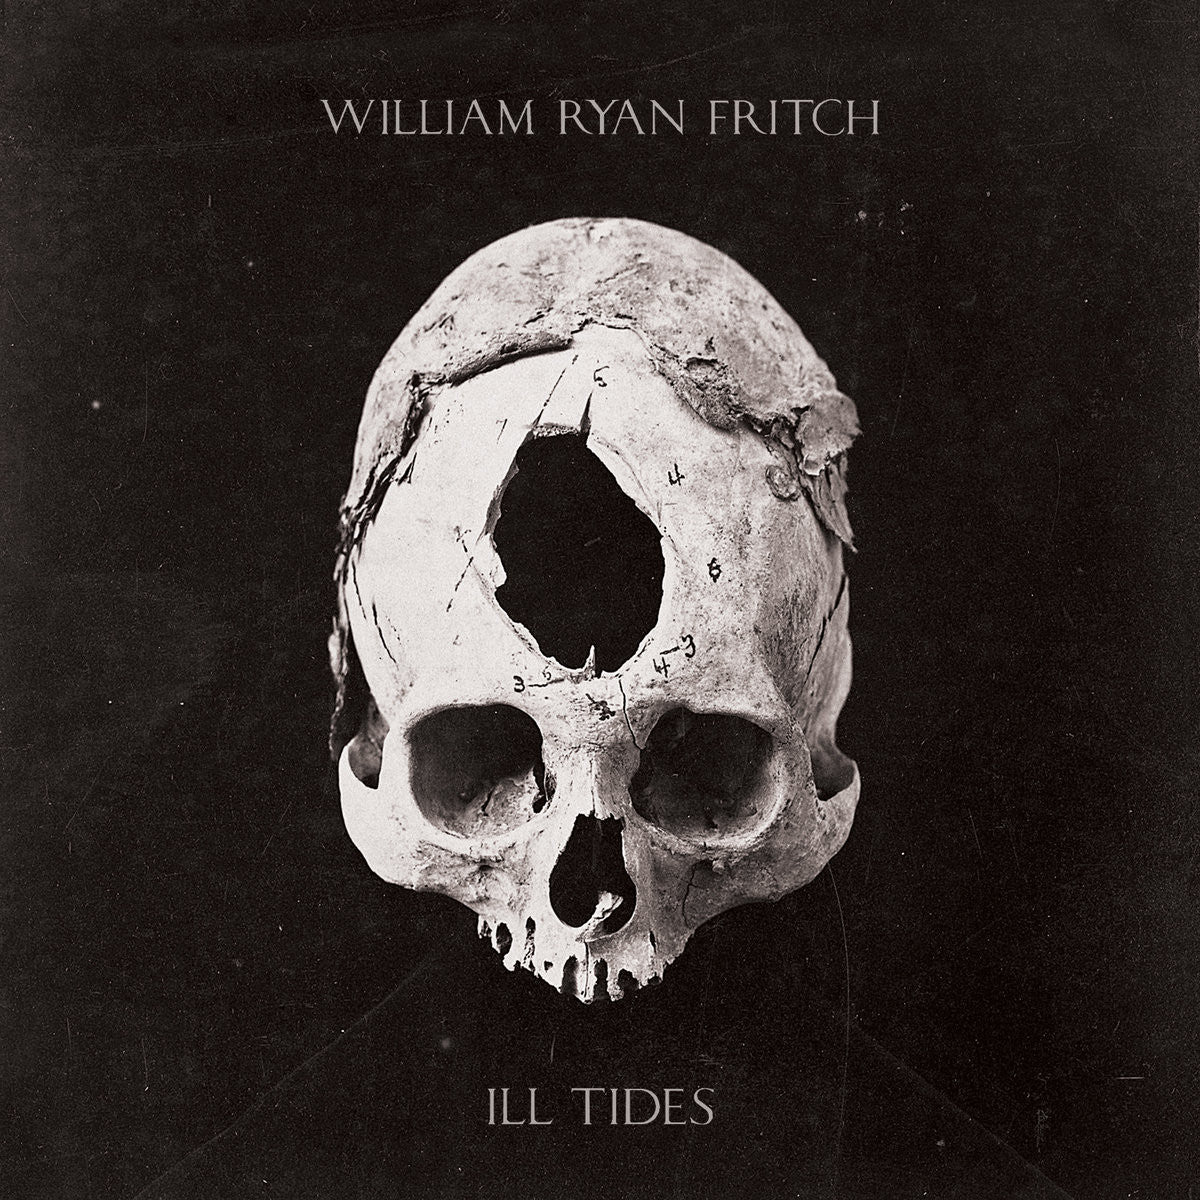 William Ryan Fritch - Ill Tides